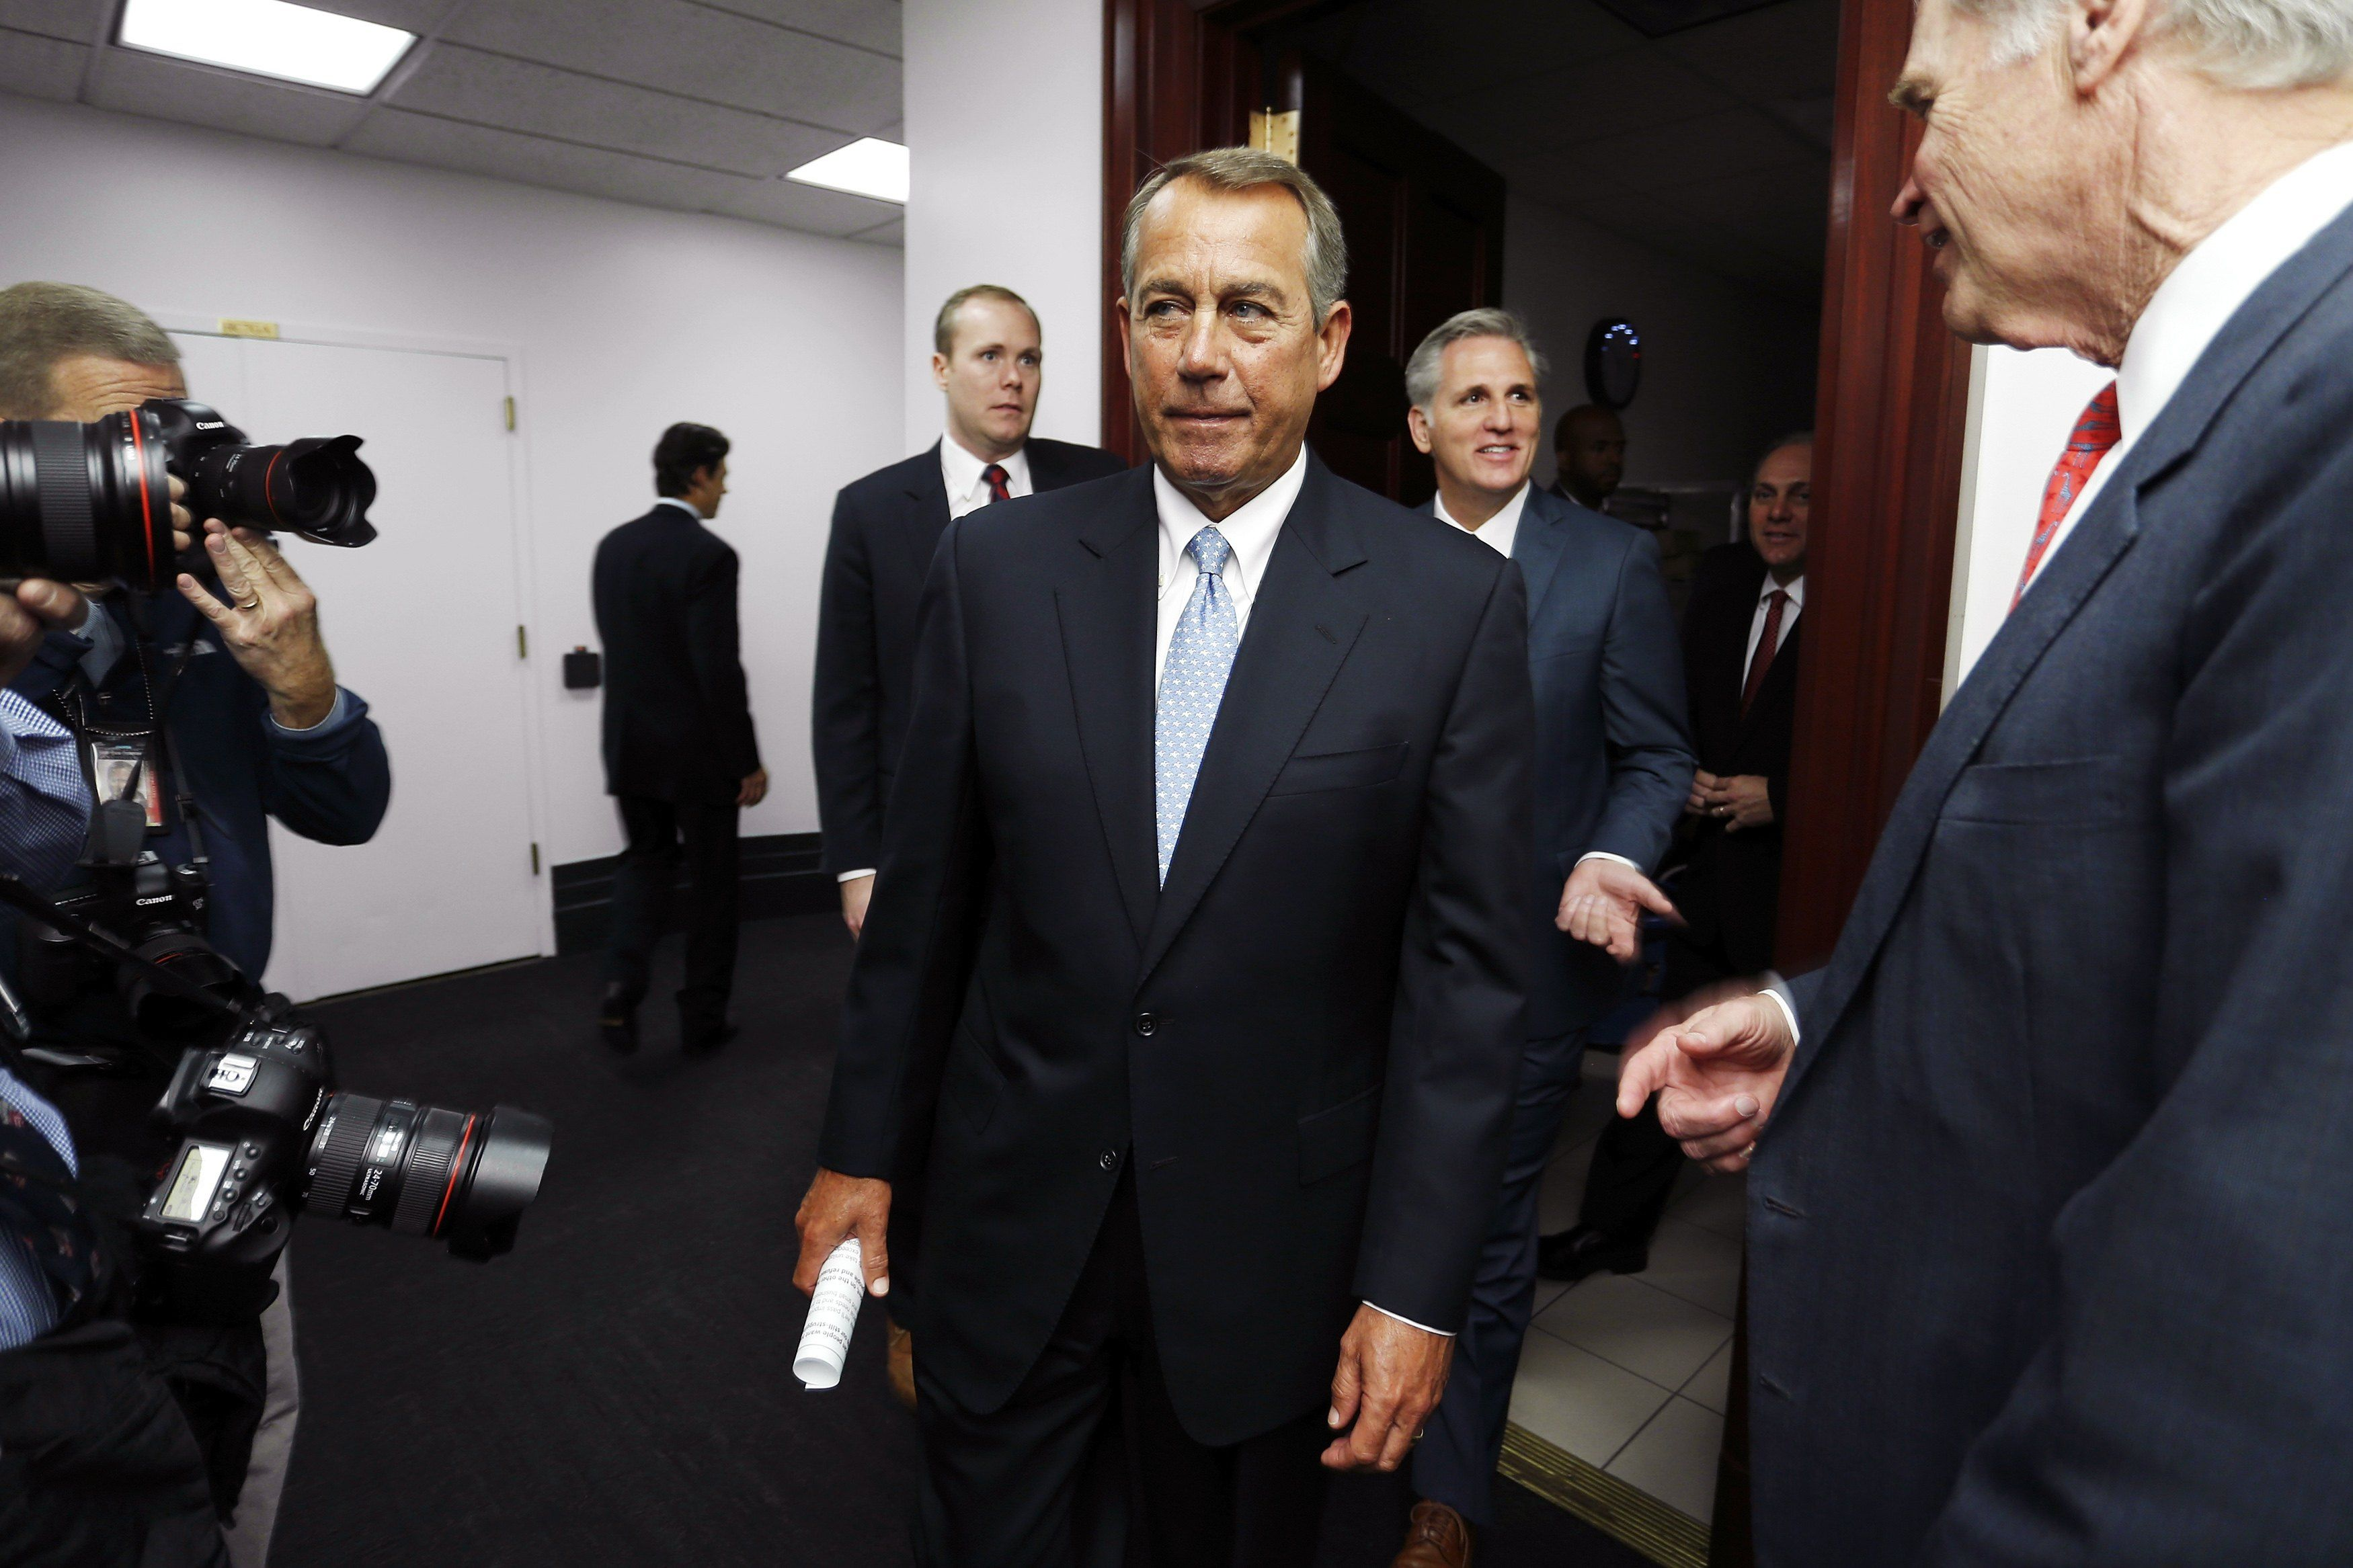 The GOP gives up the immigration fight Loud bark, no bite: The GOP gives up the immigration fight  http://www.washingtonpost.com/opinions/dana-milbank-the-gops-symbolic-fight-against-immigration-action/2014/12/02/a0a5d816-7a5b-11e4-9a27-6fdbc612bff8_story.html?hpid=z5